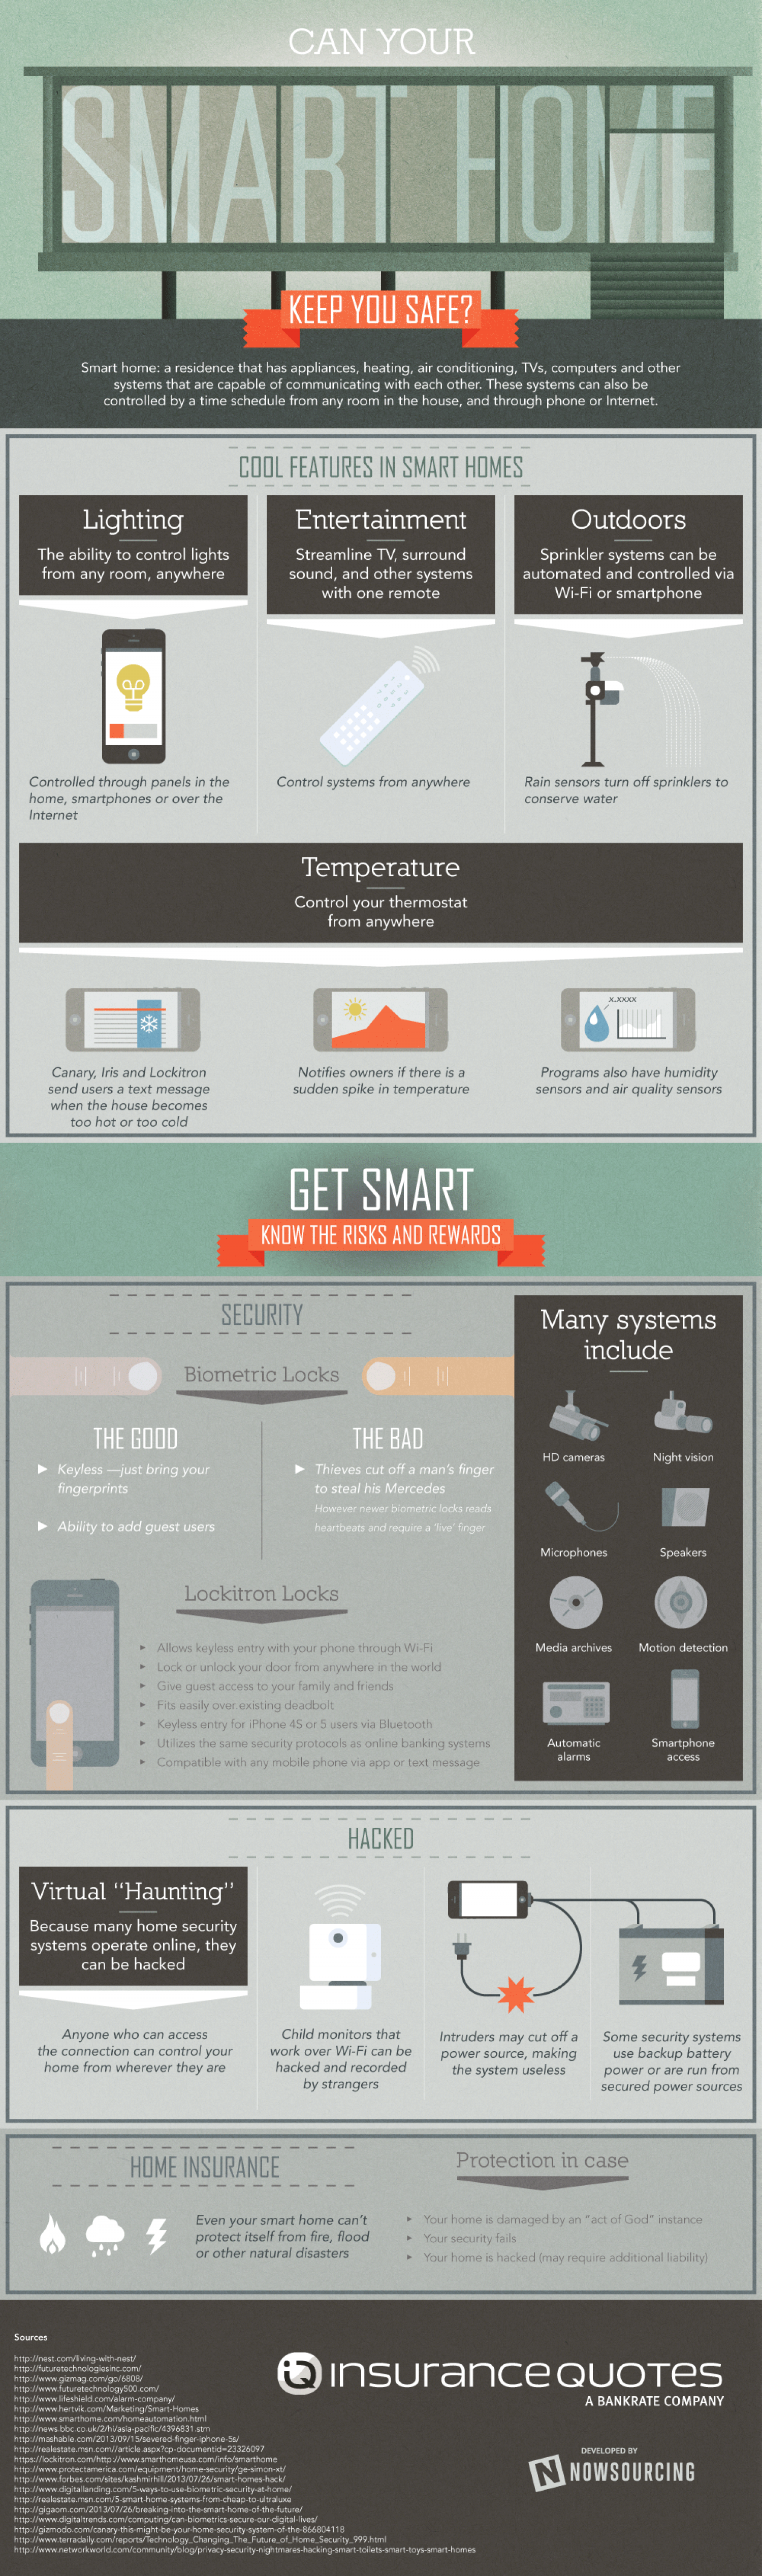 Can Your Smart Home Keep You Safe? Infographic